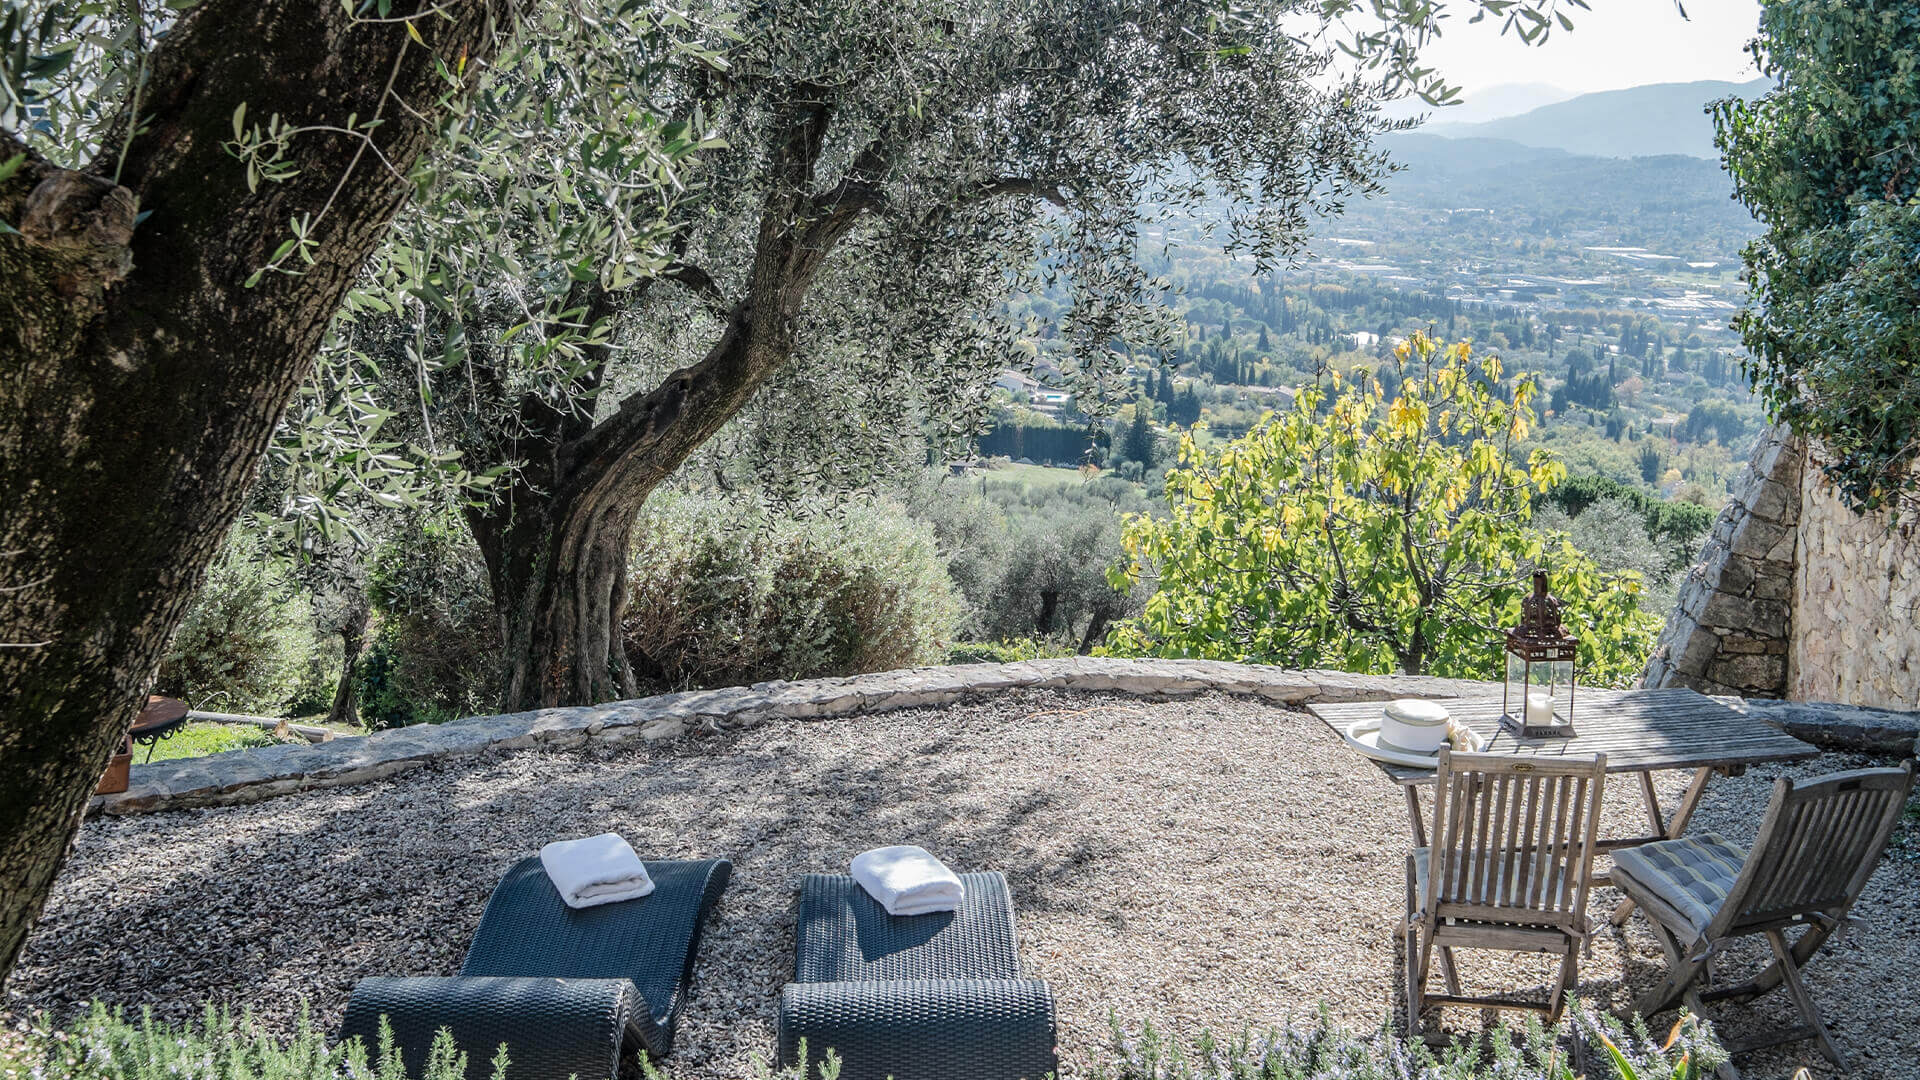 Beautiful villa outside Grasse with loungers and view of valley